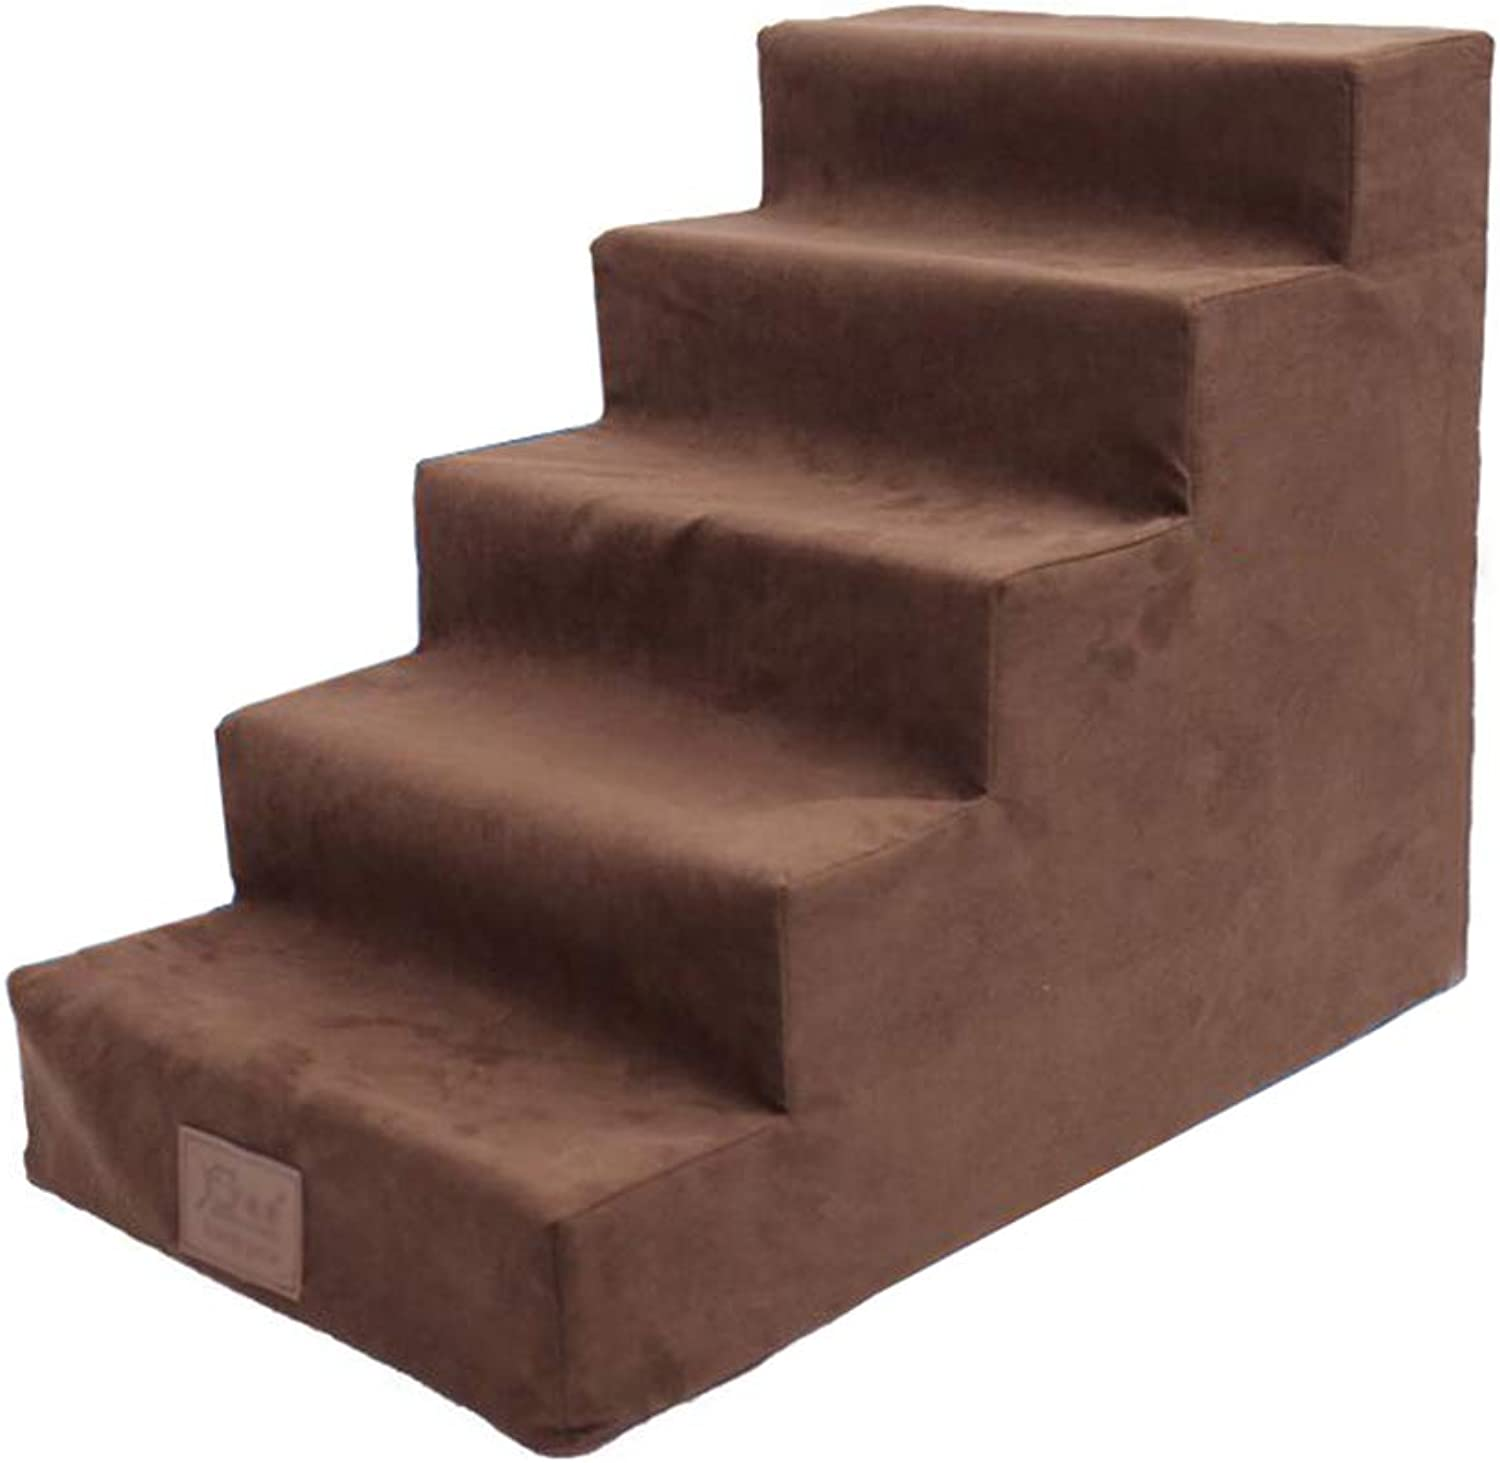 Pet stairs 5 Step Stool Dog Stairs for High Bed, Medium Dogs Pet Cat for Bed Sofa, Sponge Suede, Brown